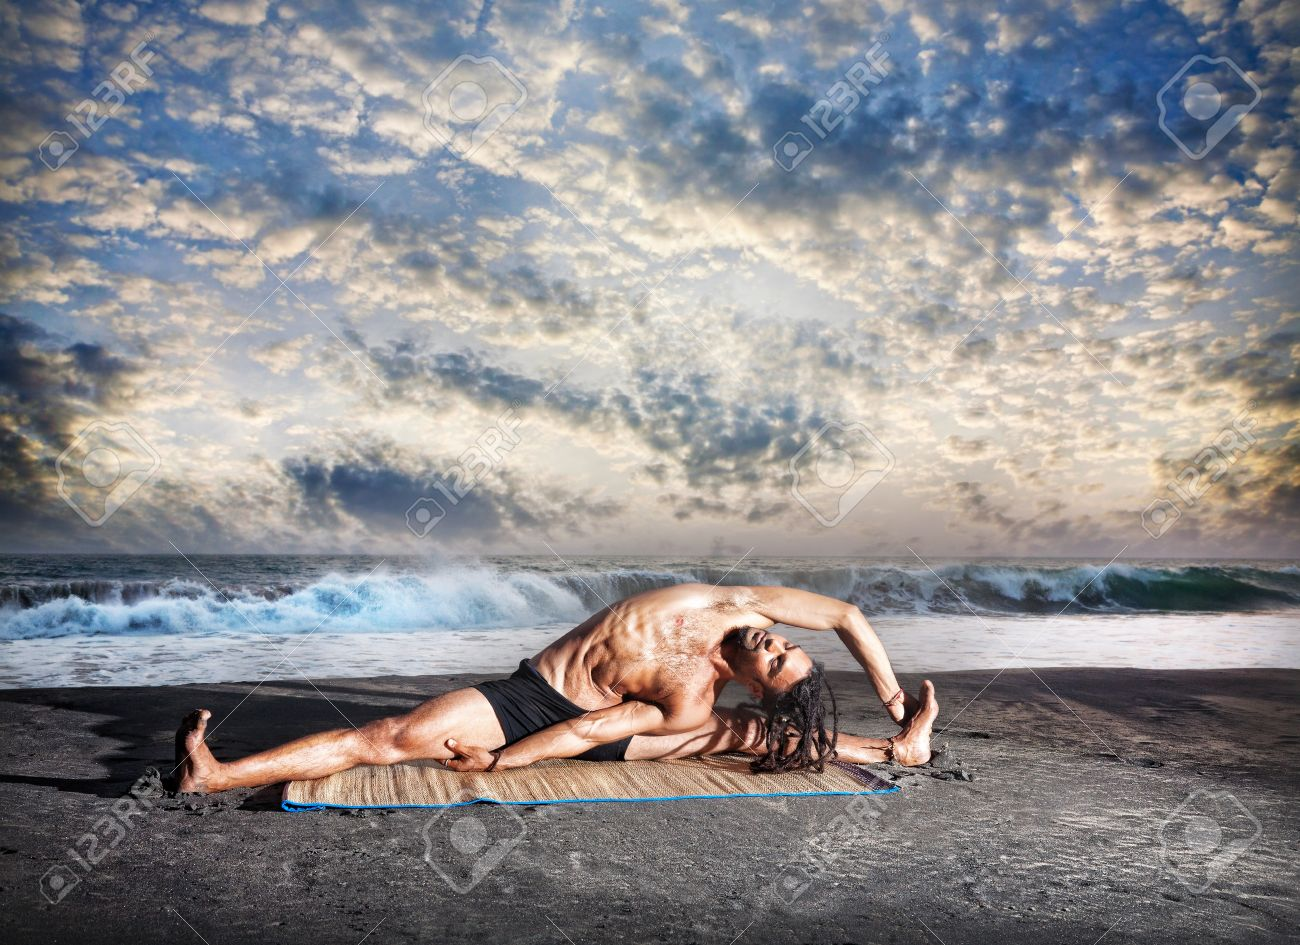 Yoga parivrtta janu sirsasana pose by fit man with dreadlocks on the beach near the ocean at sunset background Stock Photo - 14471335